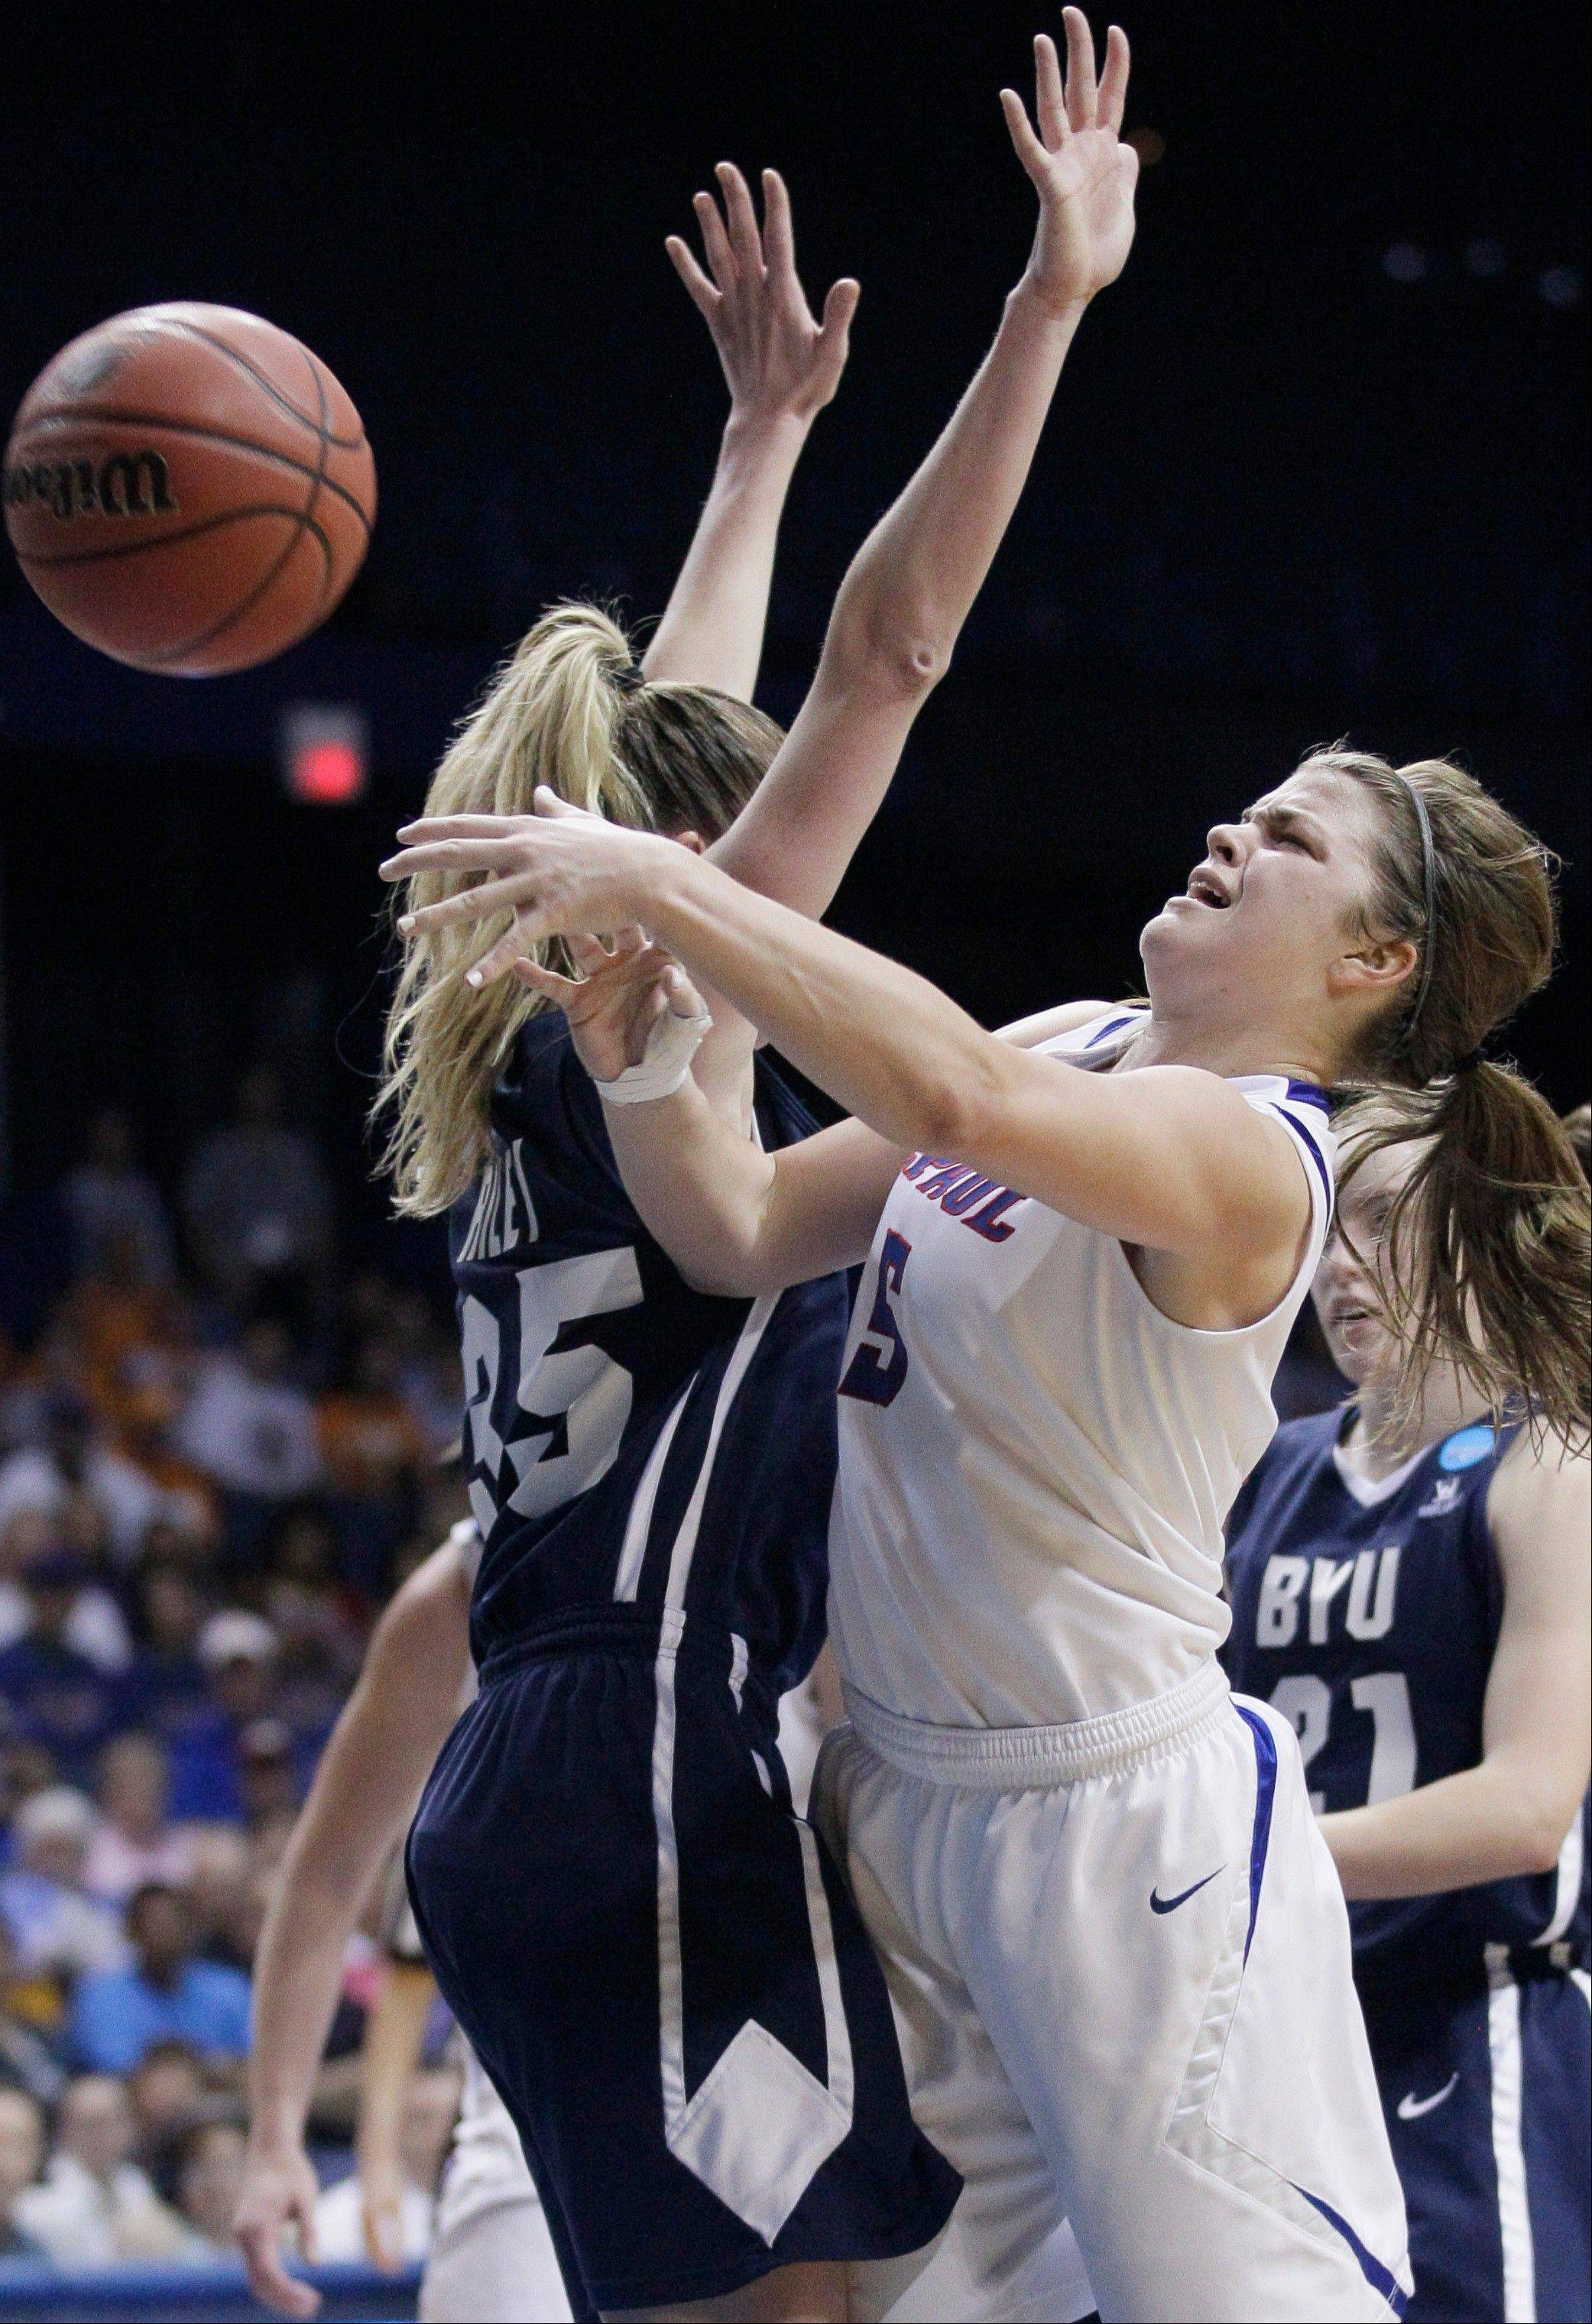 DePaul guard Anna Martin (5) shoots over BYU center Kristen Riley (35) during the second half of an NCAA Tournament first-round women's college basketball game in Rosemont on Saturday.